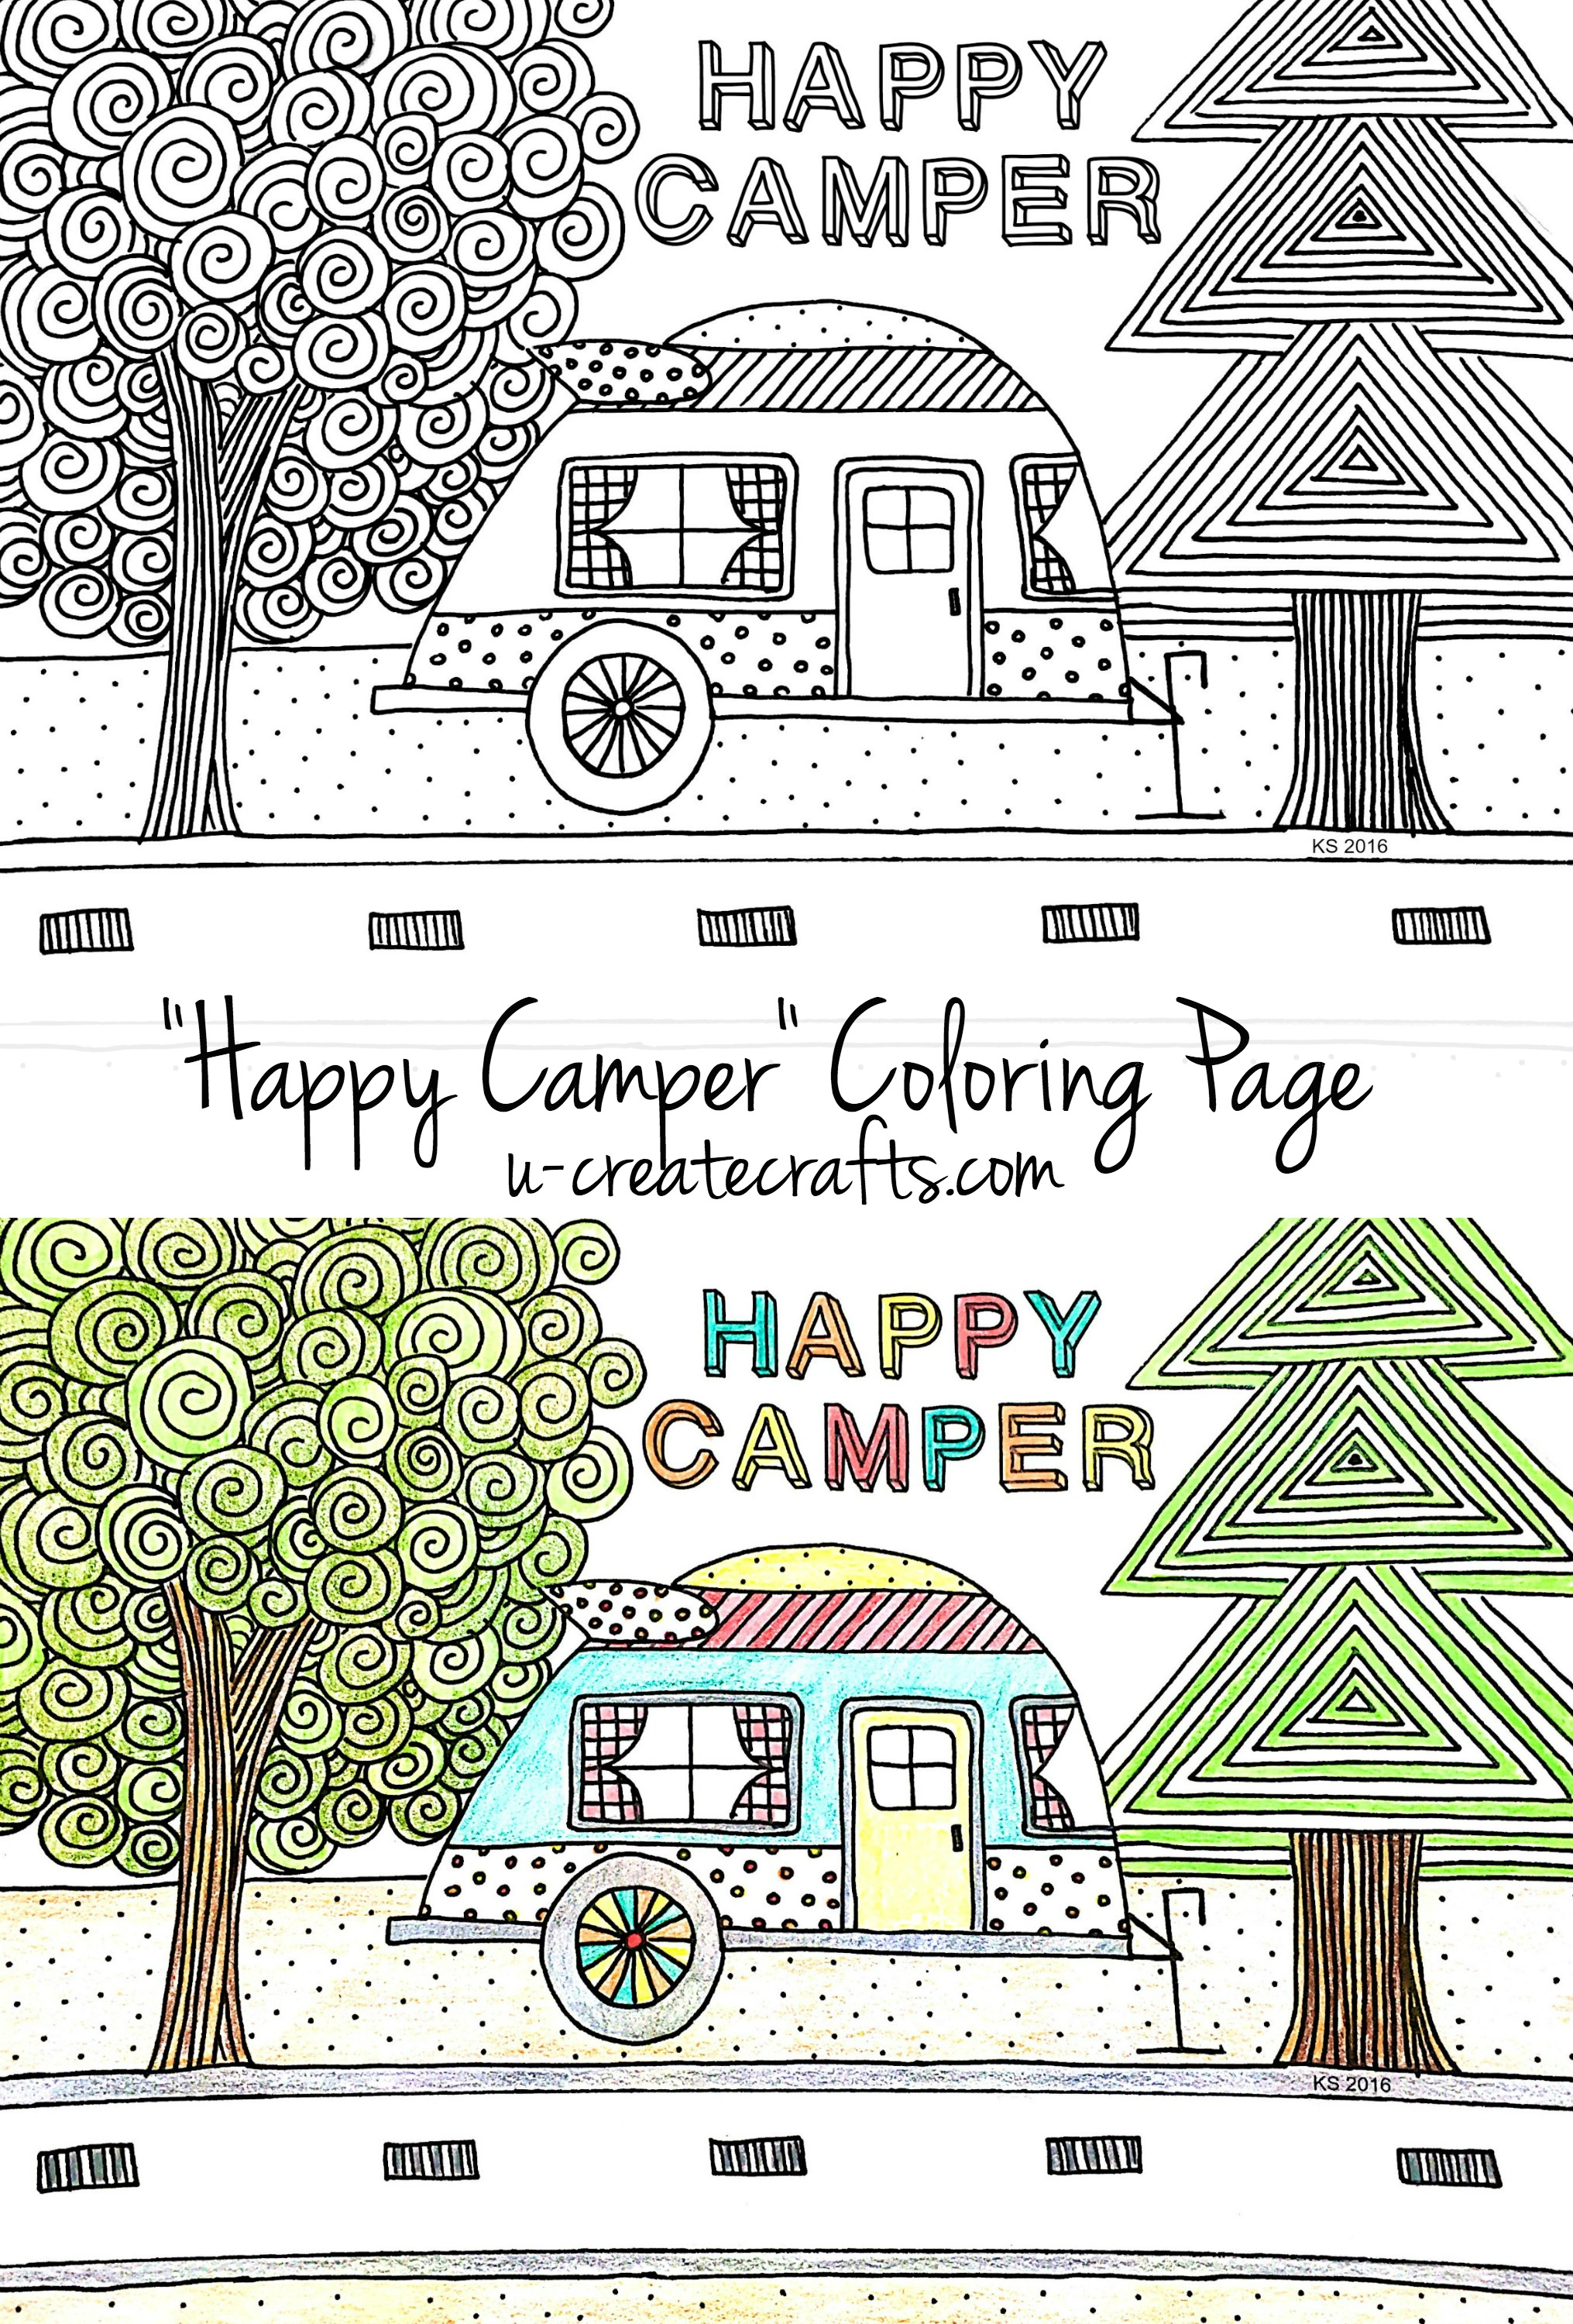 Happy Camper Free Coloring Page by U Create